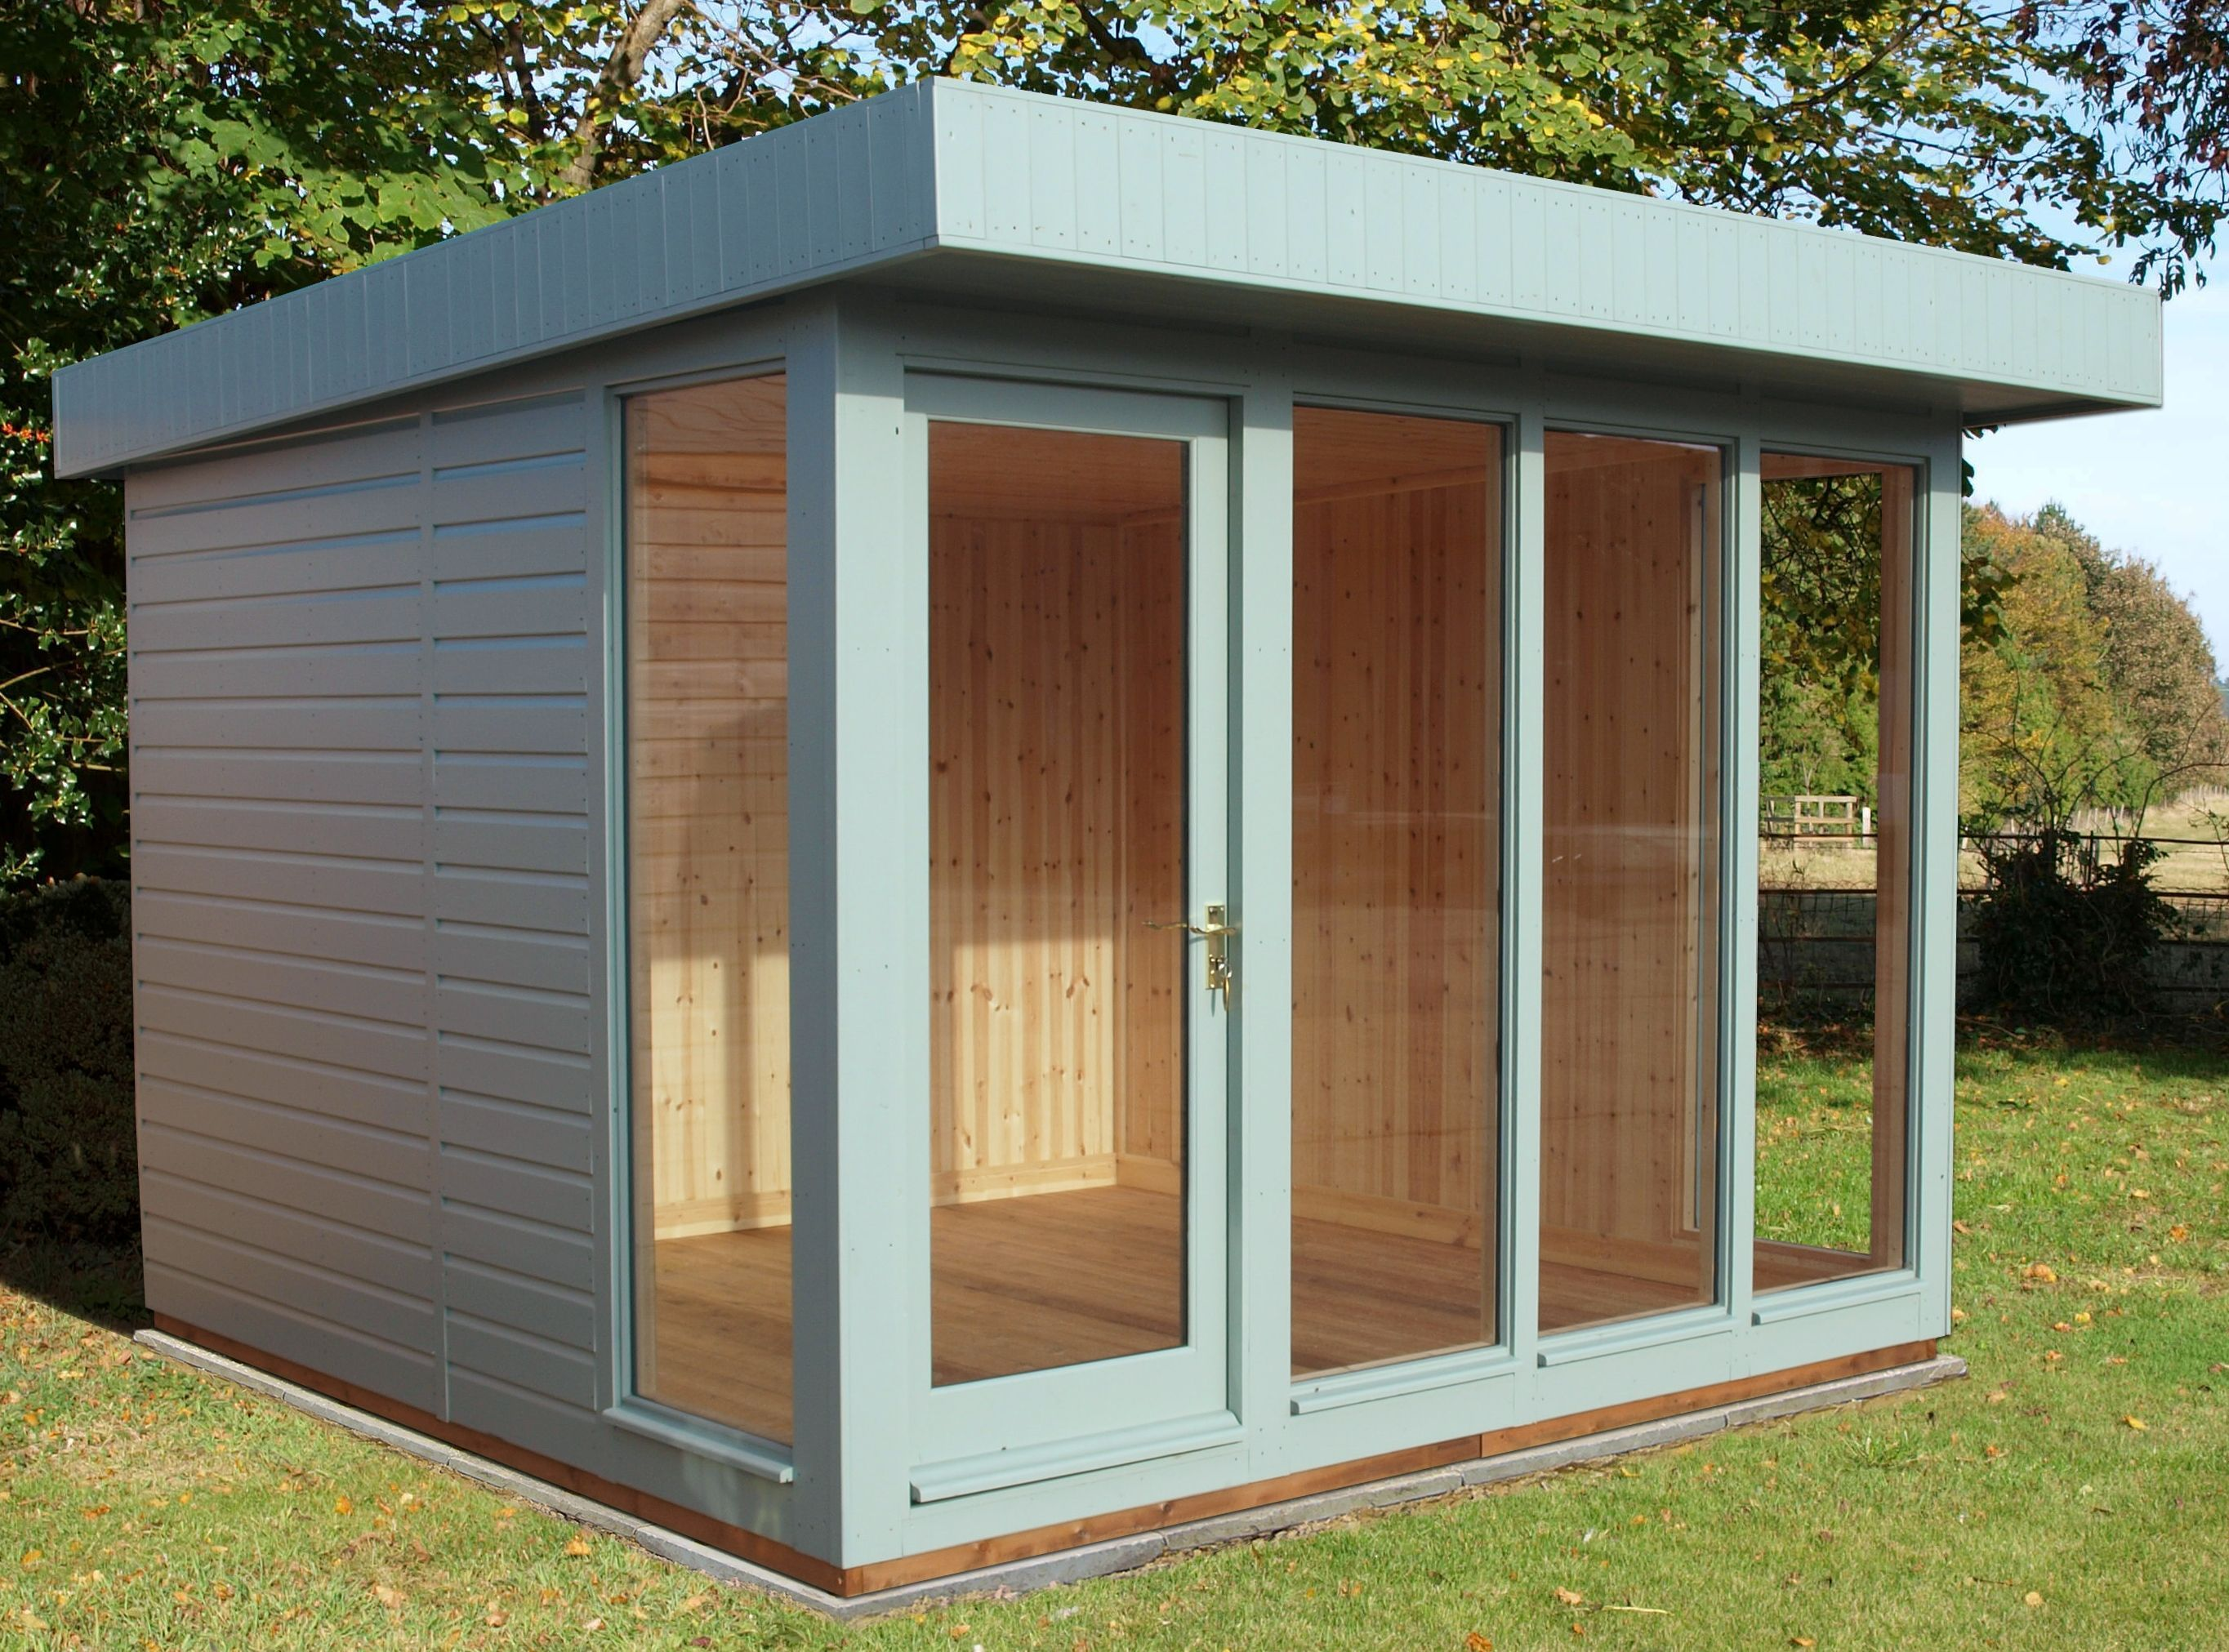 Backyard Shed Designs | Contemporary Garden Sheds : Where To Search For Diy  Shed Plans #